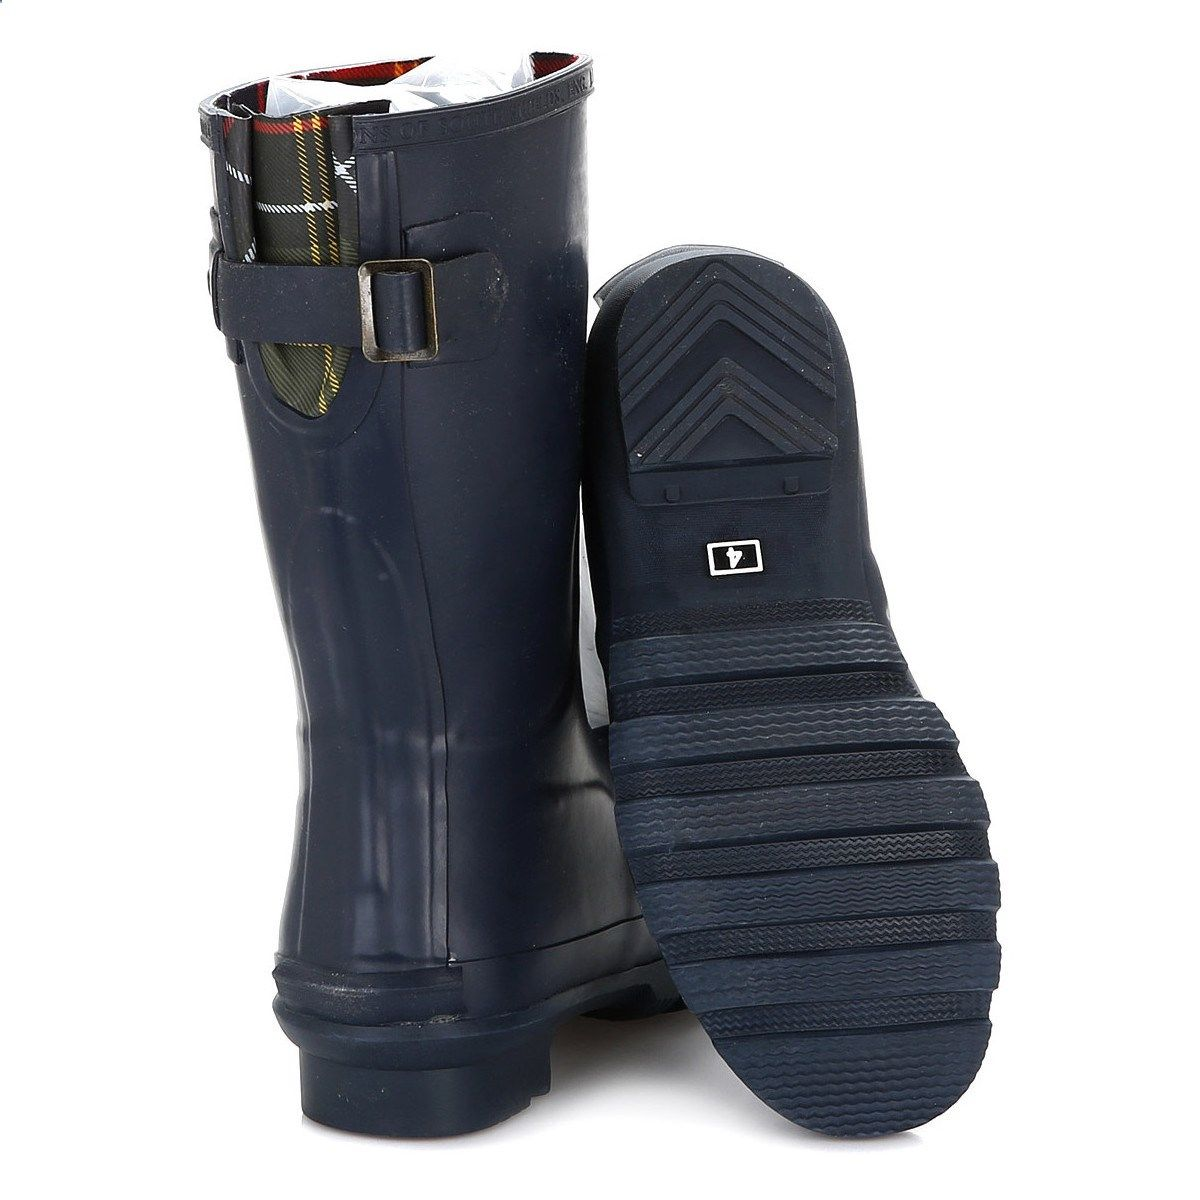 88b8c09c4 Barbour Womens Navy Short Jarrow Wellington Boots Blue | fashion ...